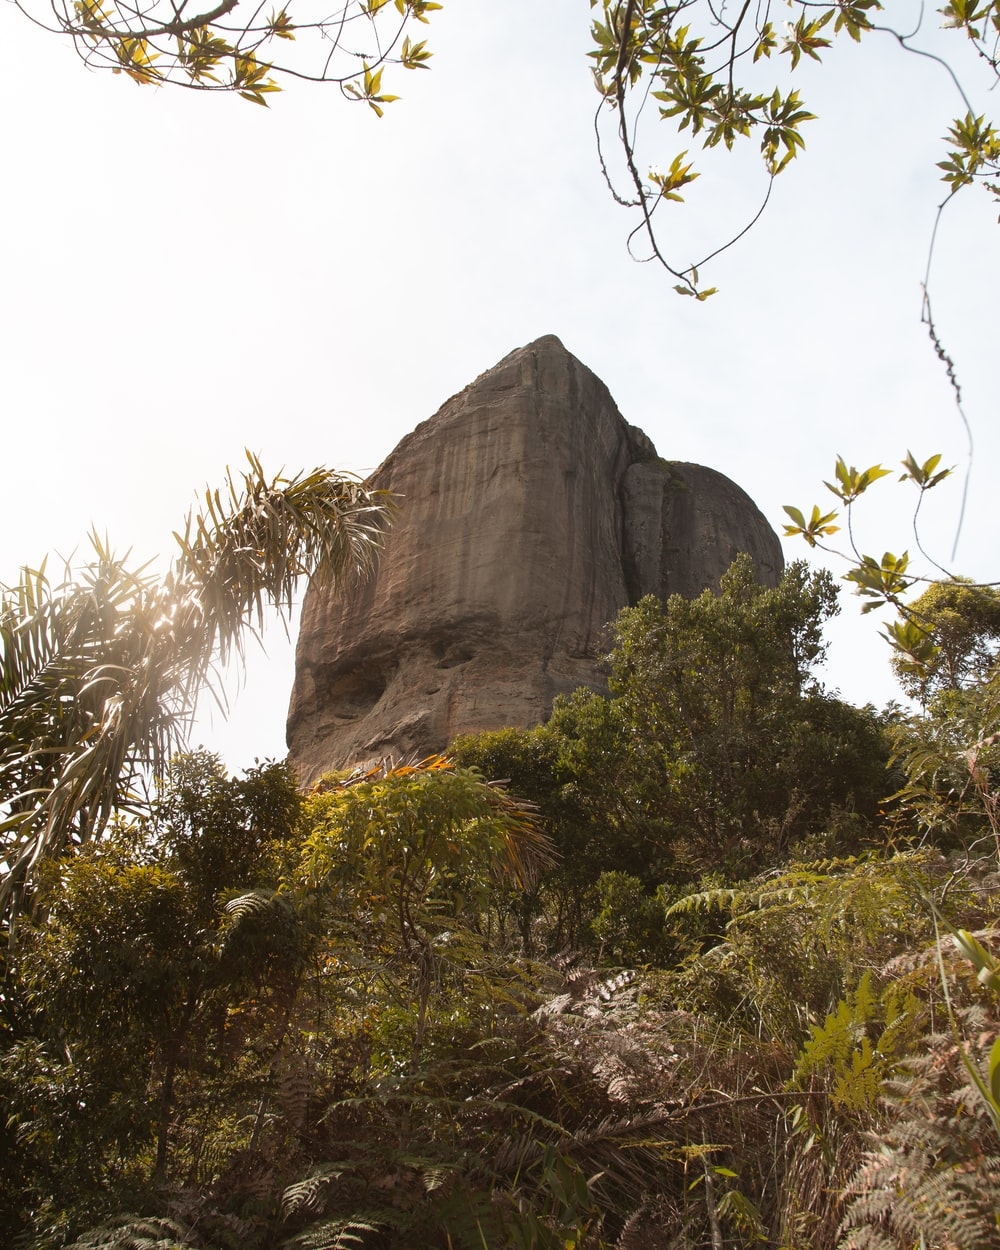 green trees near gray rock formation during daytime